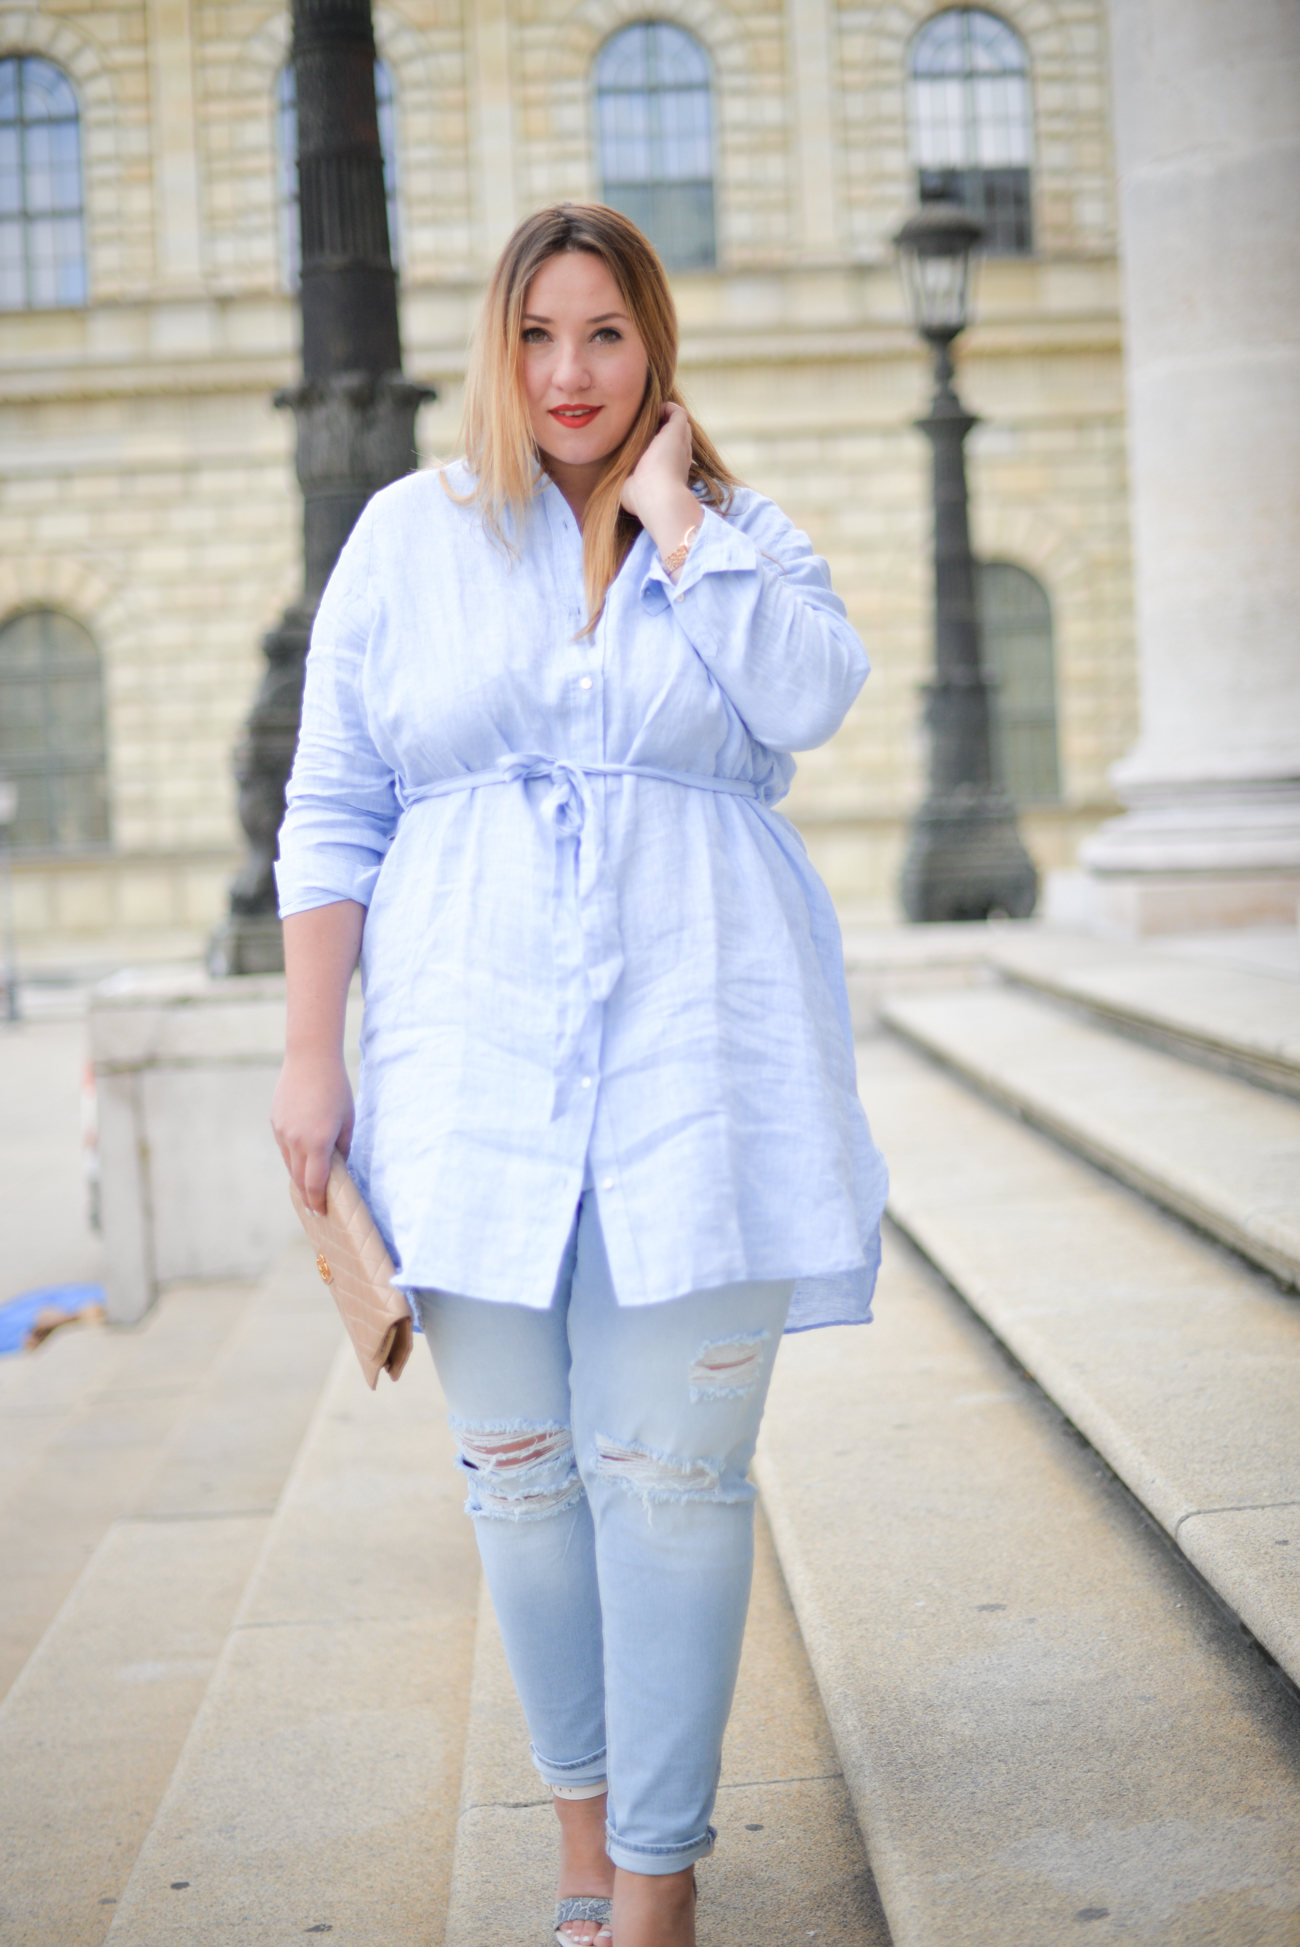 Plussize Blog_Blogger_Fashion Blog München_Theskinnyandthecurvyone_Plus-Size Blog Deutschland_Curvy Blogger_German Blogger_German Plus-Size (11 von 21)